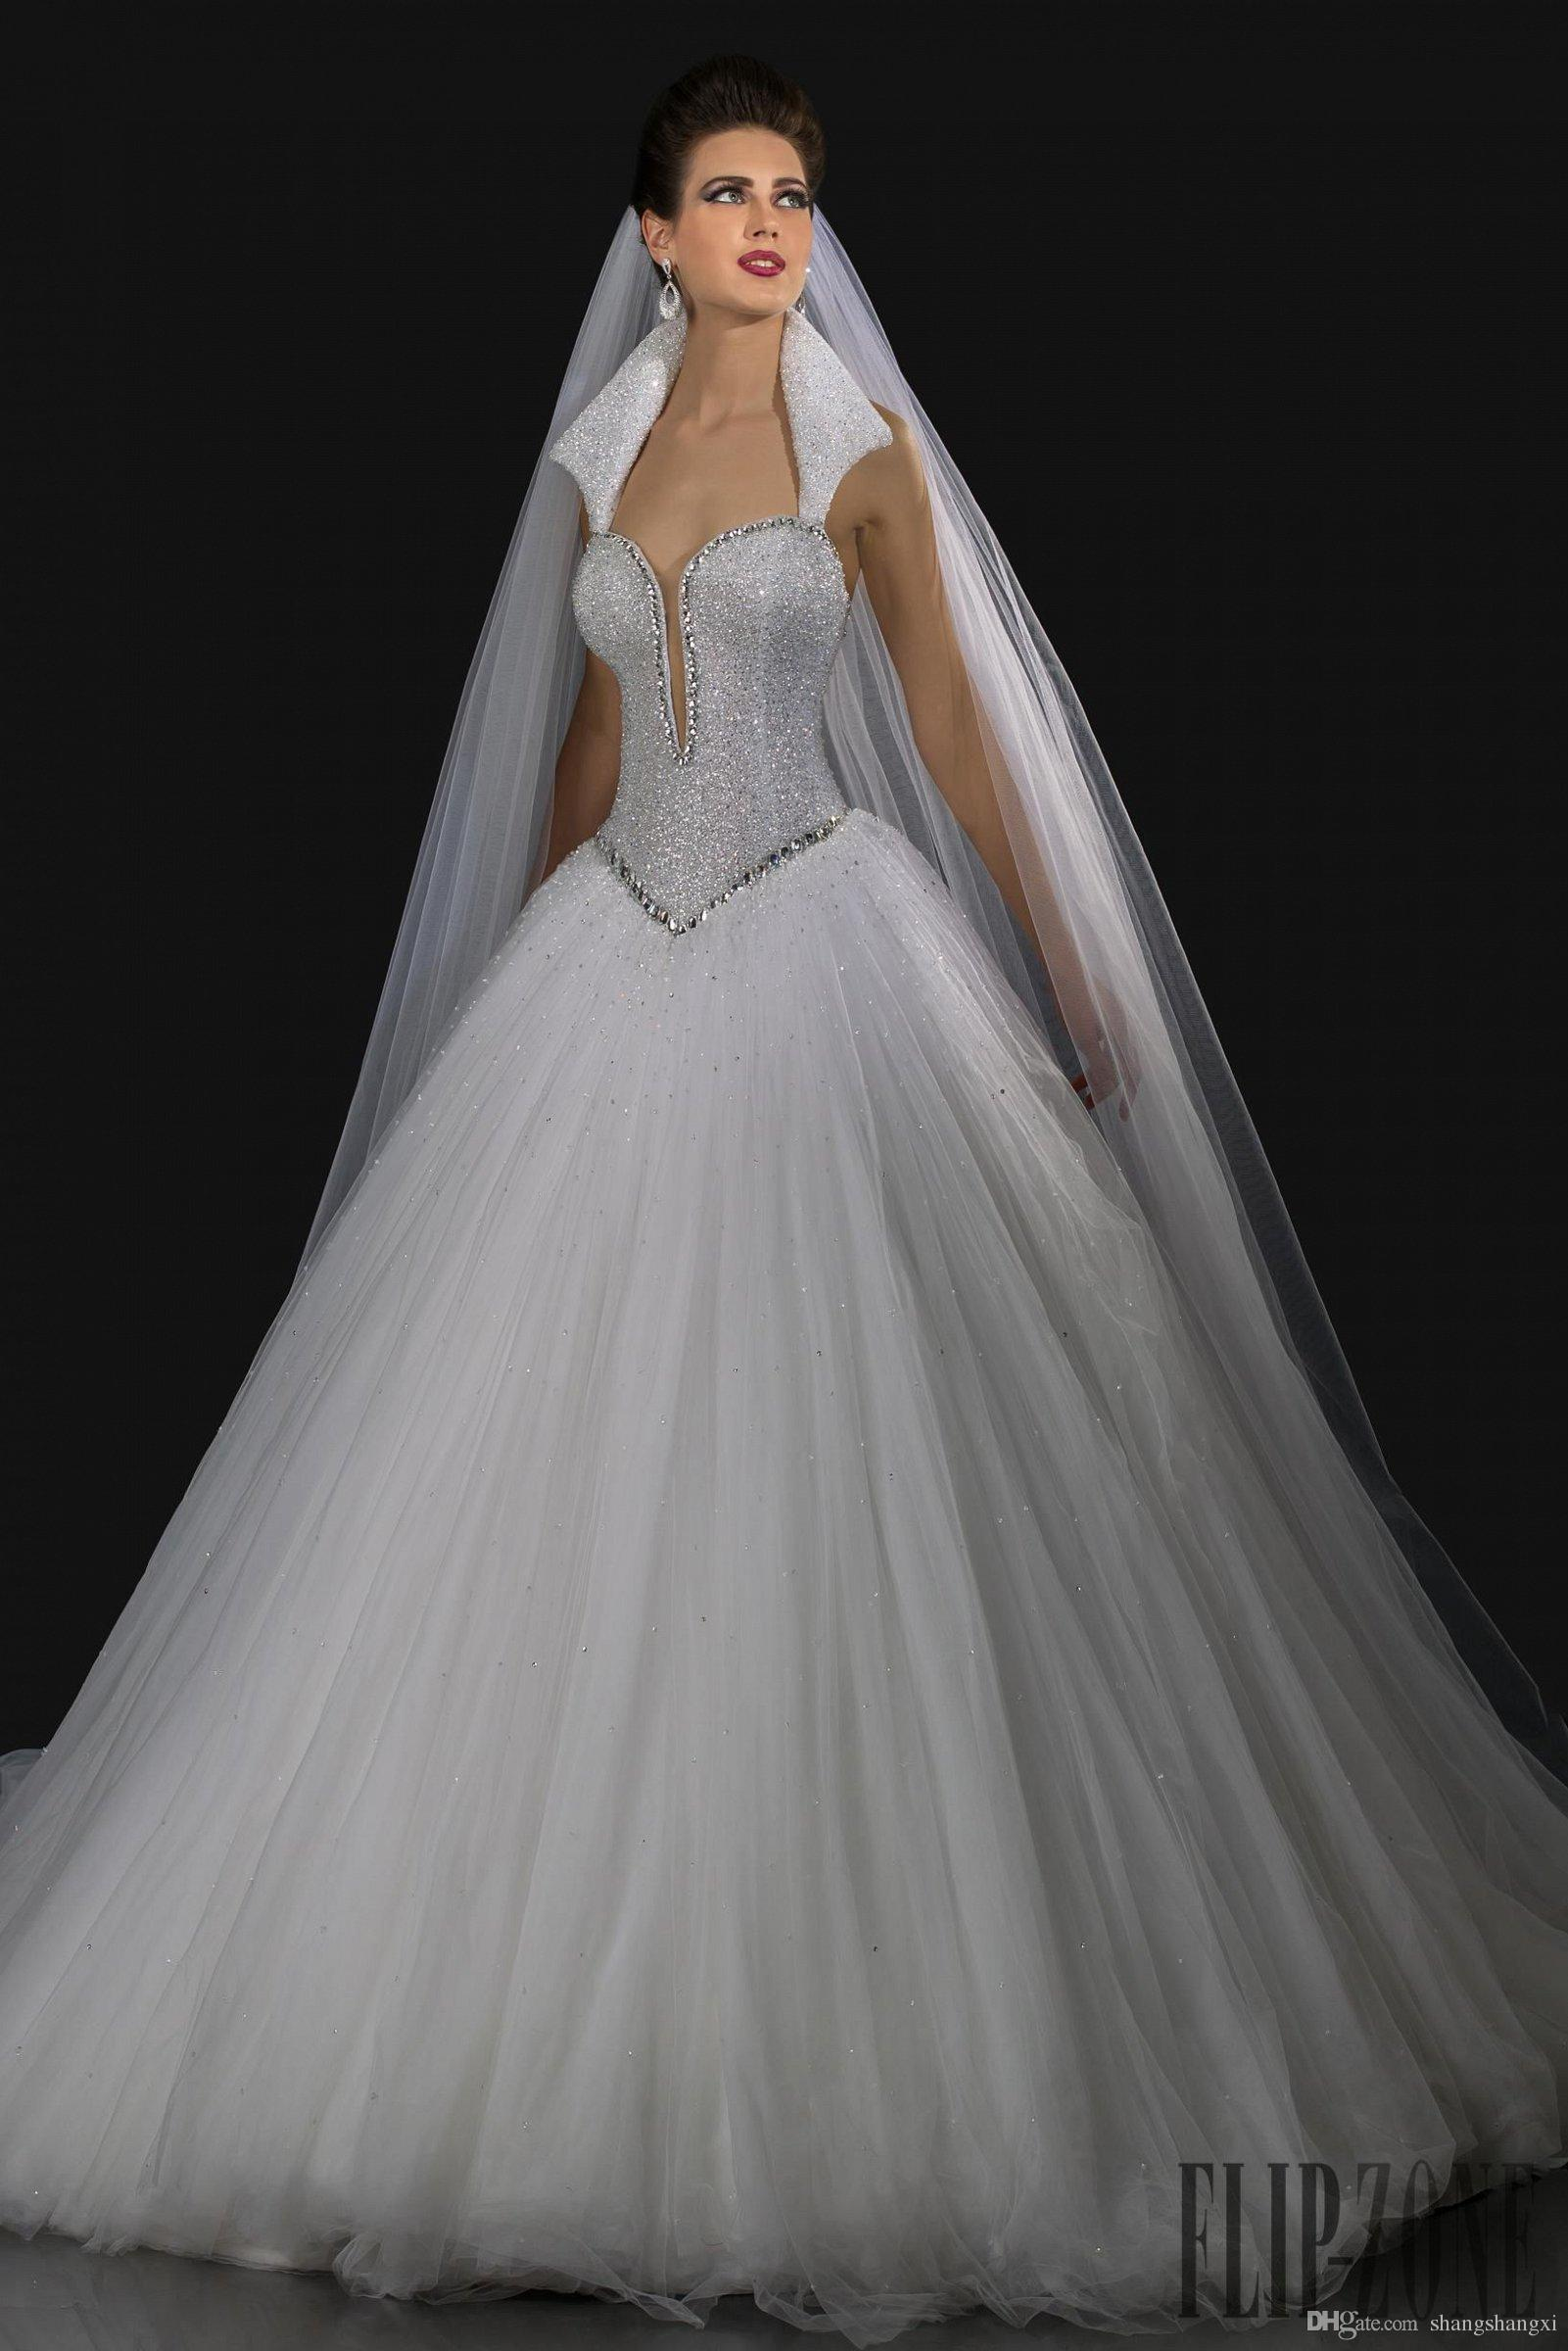 Gorgeous wedding ball gowns 2016 queen anne neckline for Queen anne neckline wedding dress